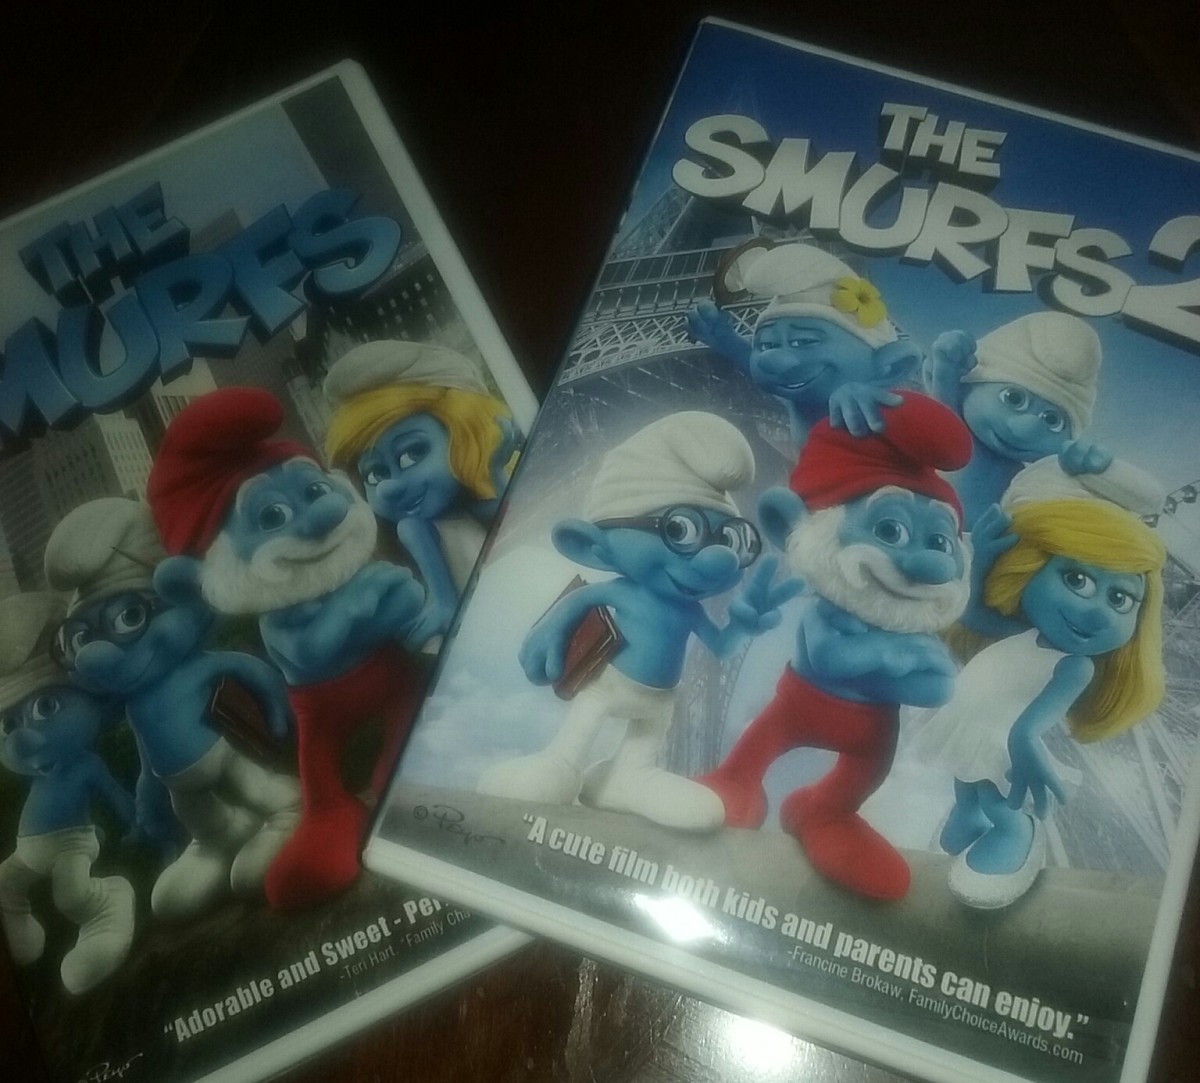 The movies, The Smurfs and The Smurfs 2